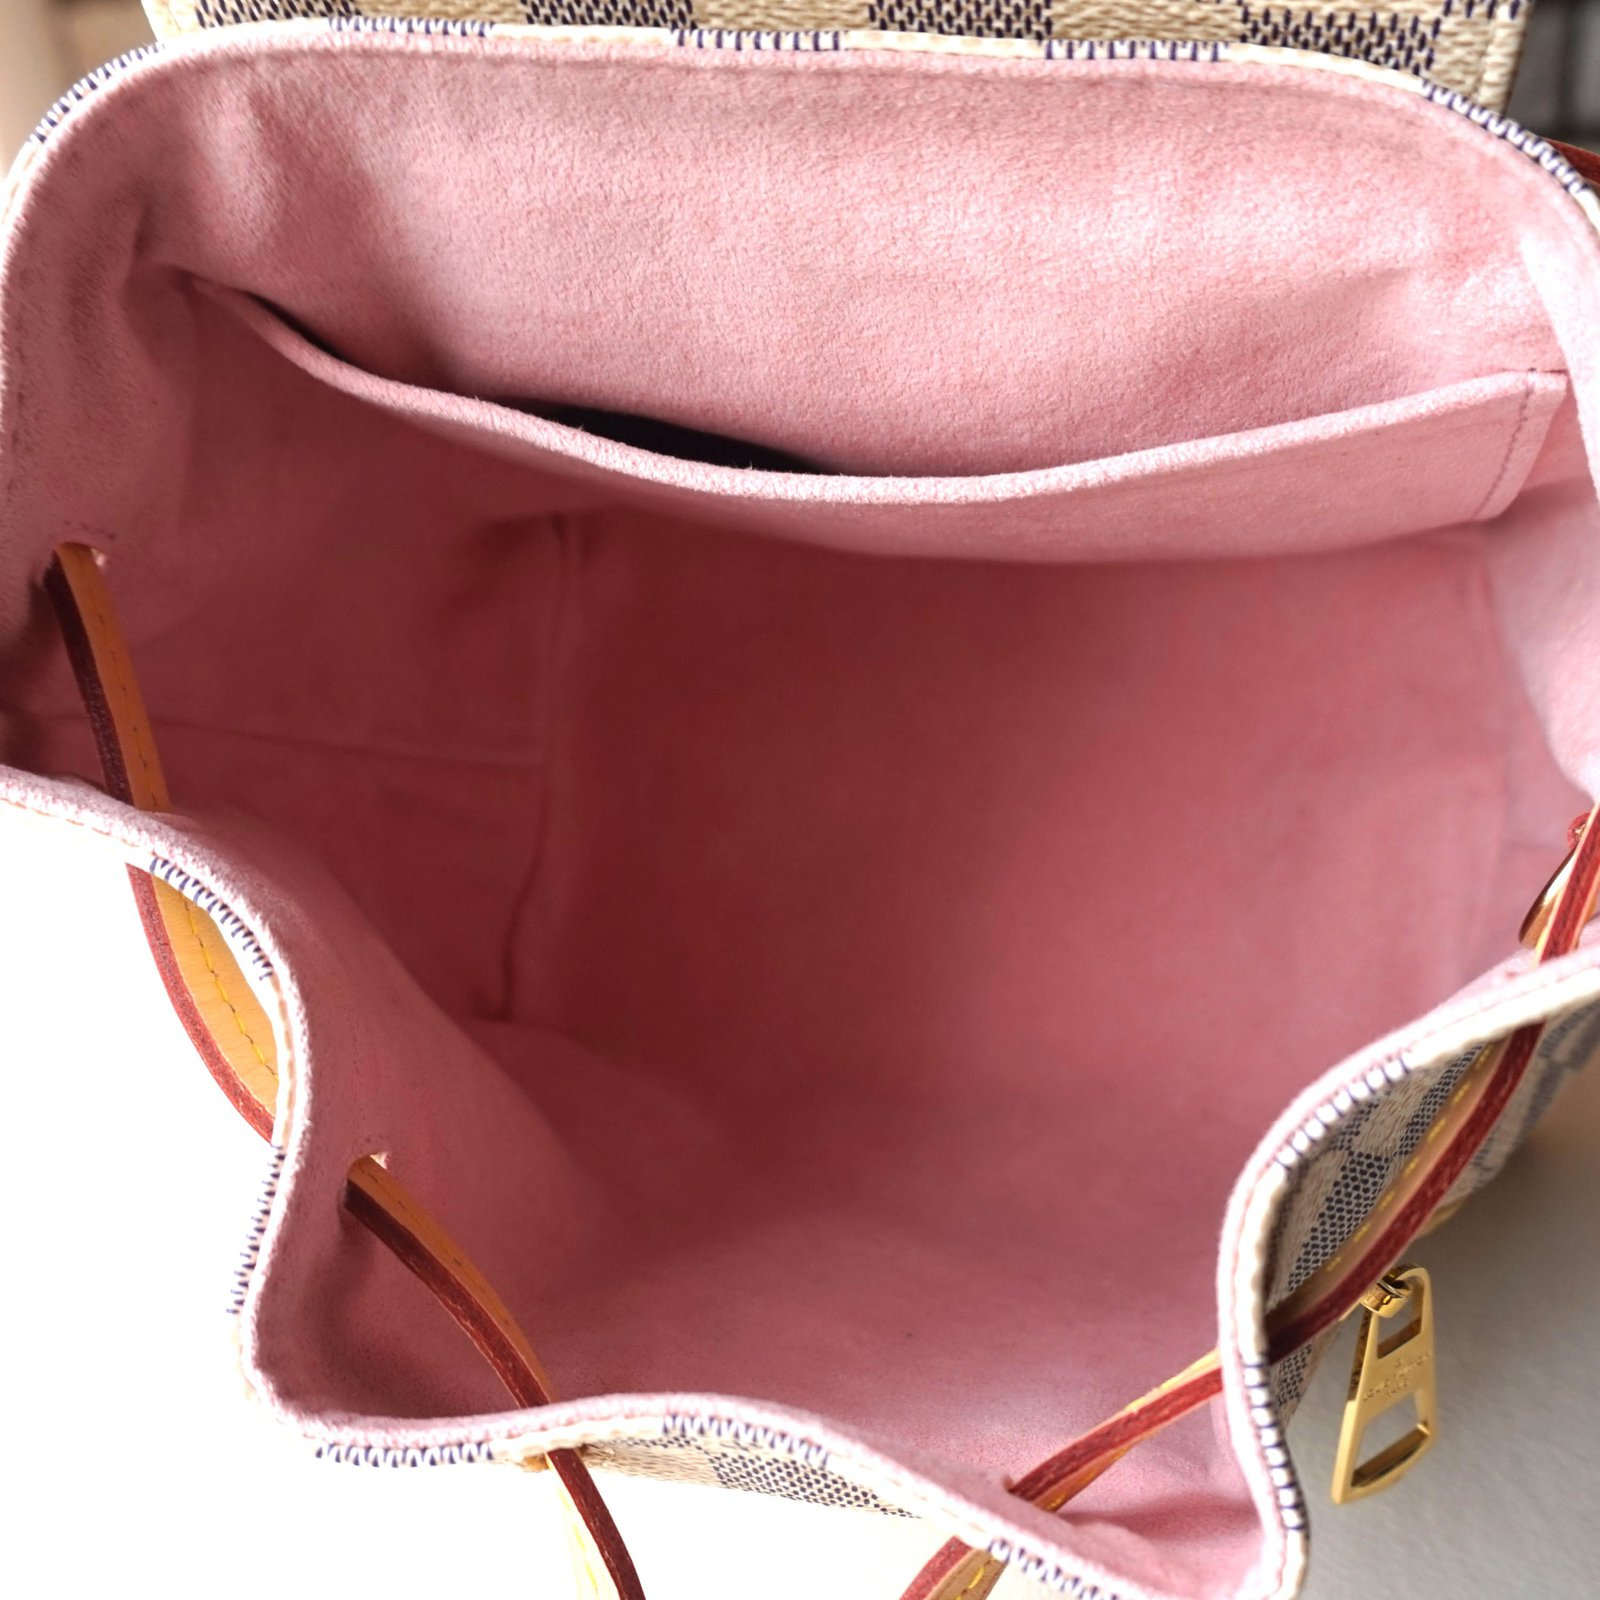 Facebook · Pin This. Louis Vuitton SPERONE BB Backpacks Leather White ref. 43686 6c897b58b9187